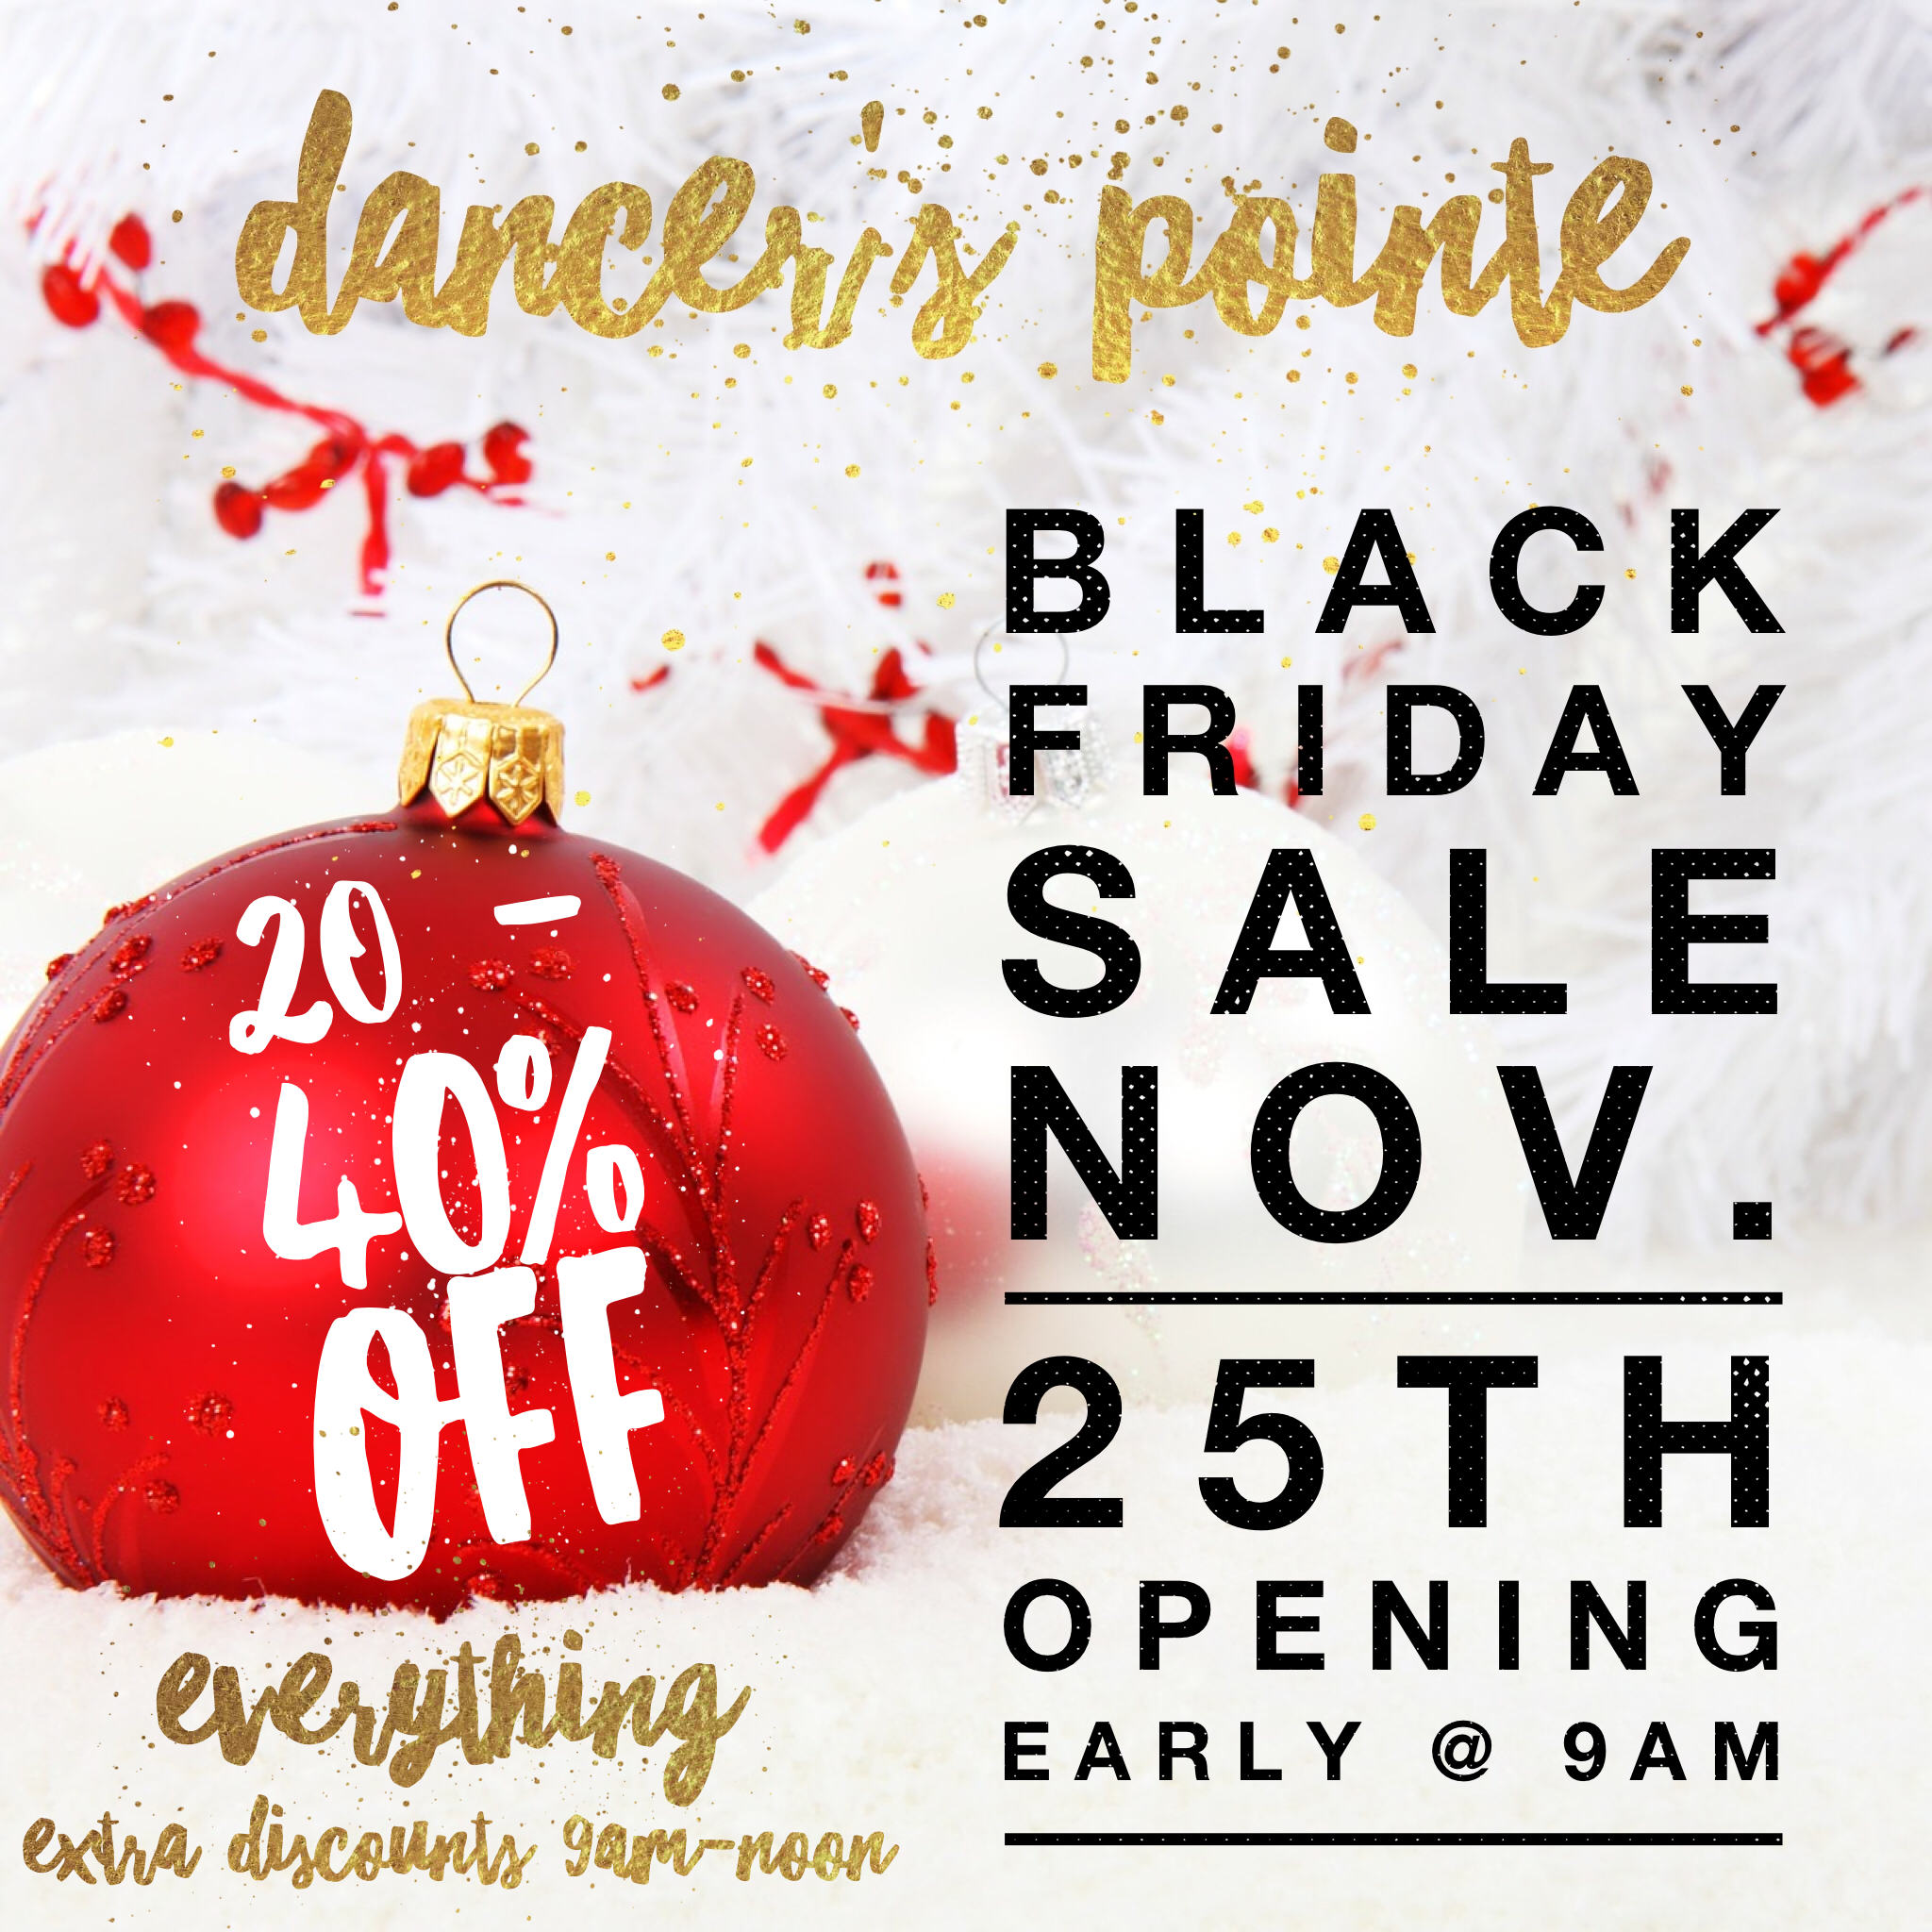 Black friday sale dancers pointe to shop on small business saturday we encourage you to come in and find the perfect gifts for the special dancer in your life kristyandbryce Image collections